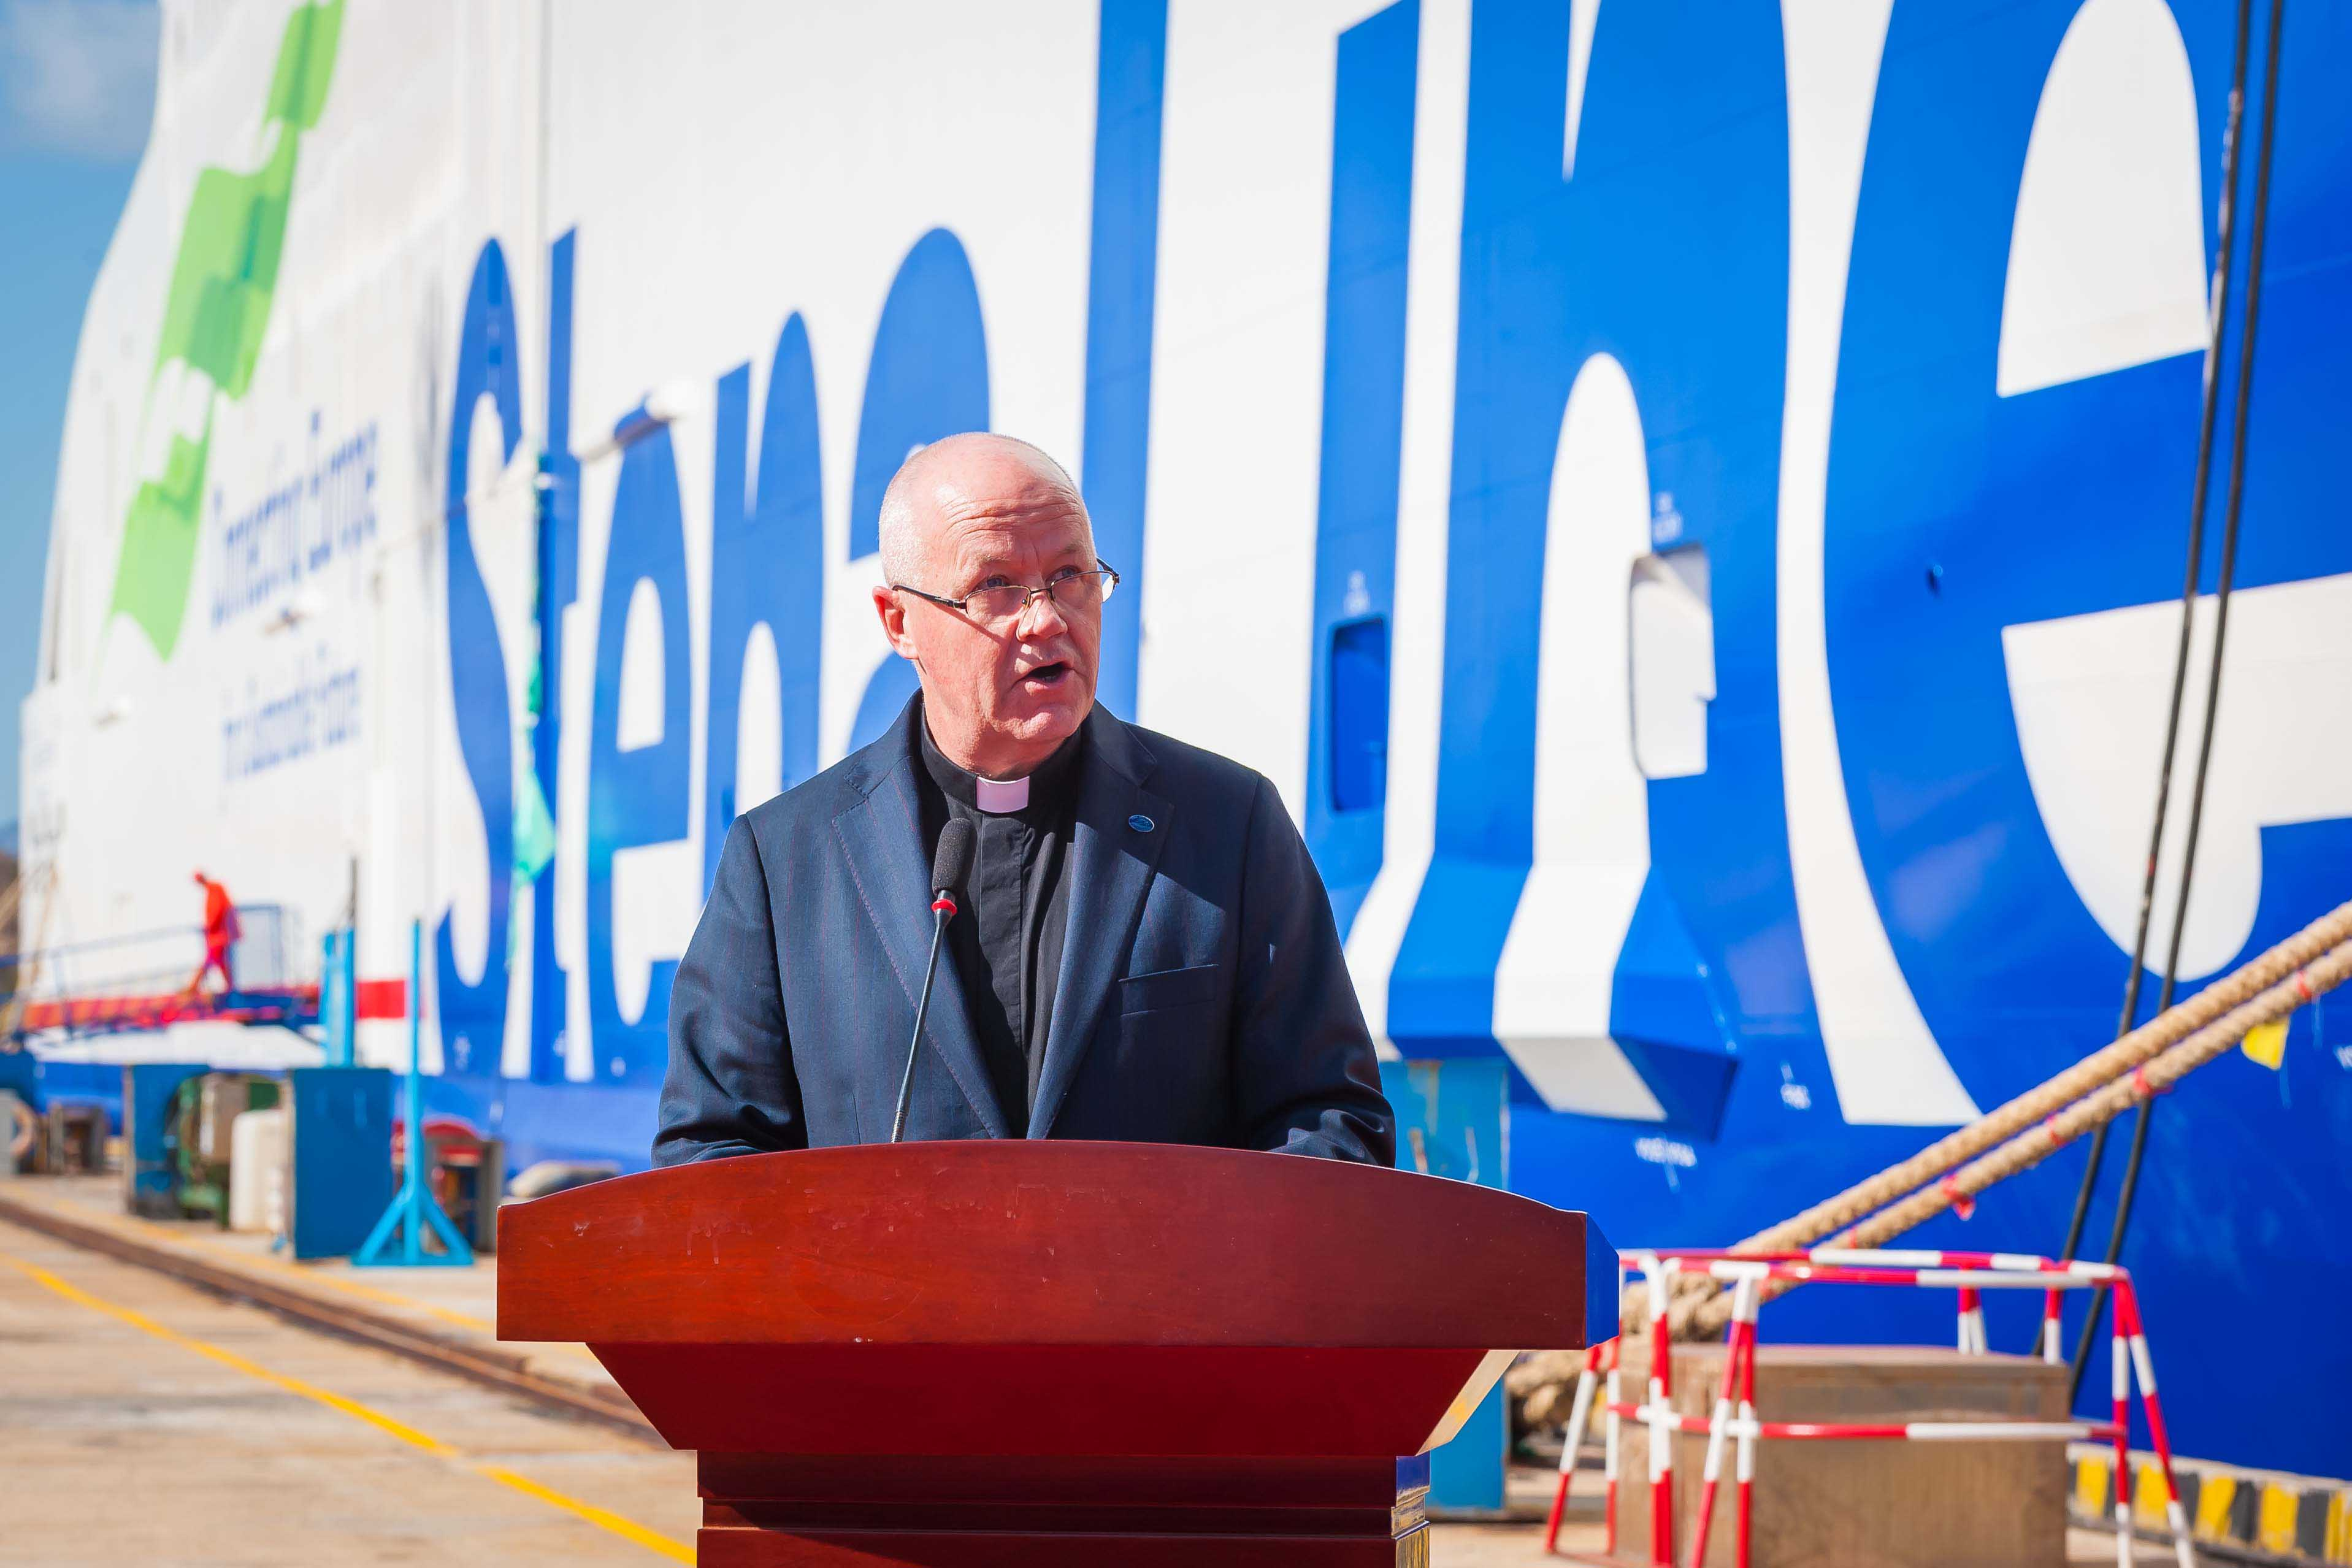 Reverend Stephen Miller, Senior Chaplain at the Mission to Seafarers, based in Hong Kong, blesses the Stena Estrid at the signing ceremony for Stena Line's newest ferry